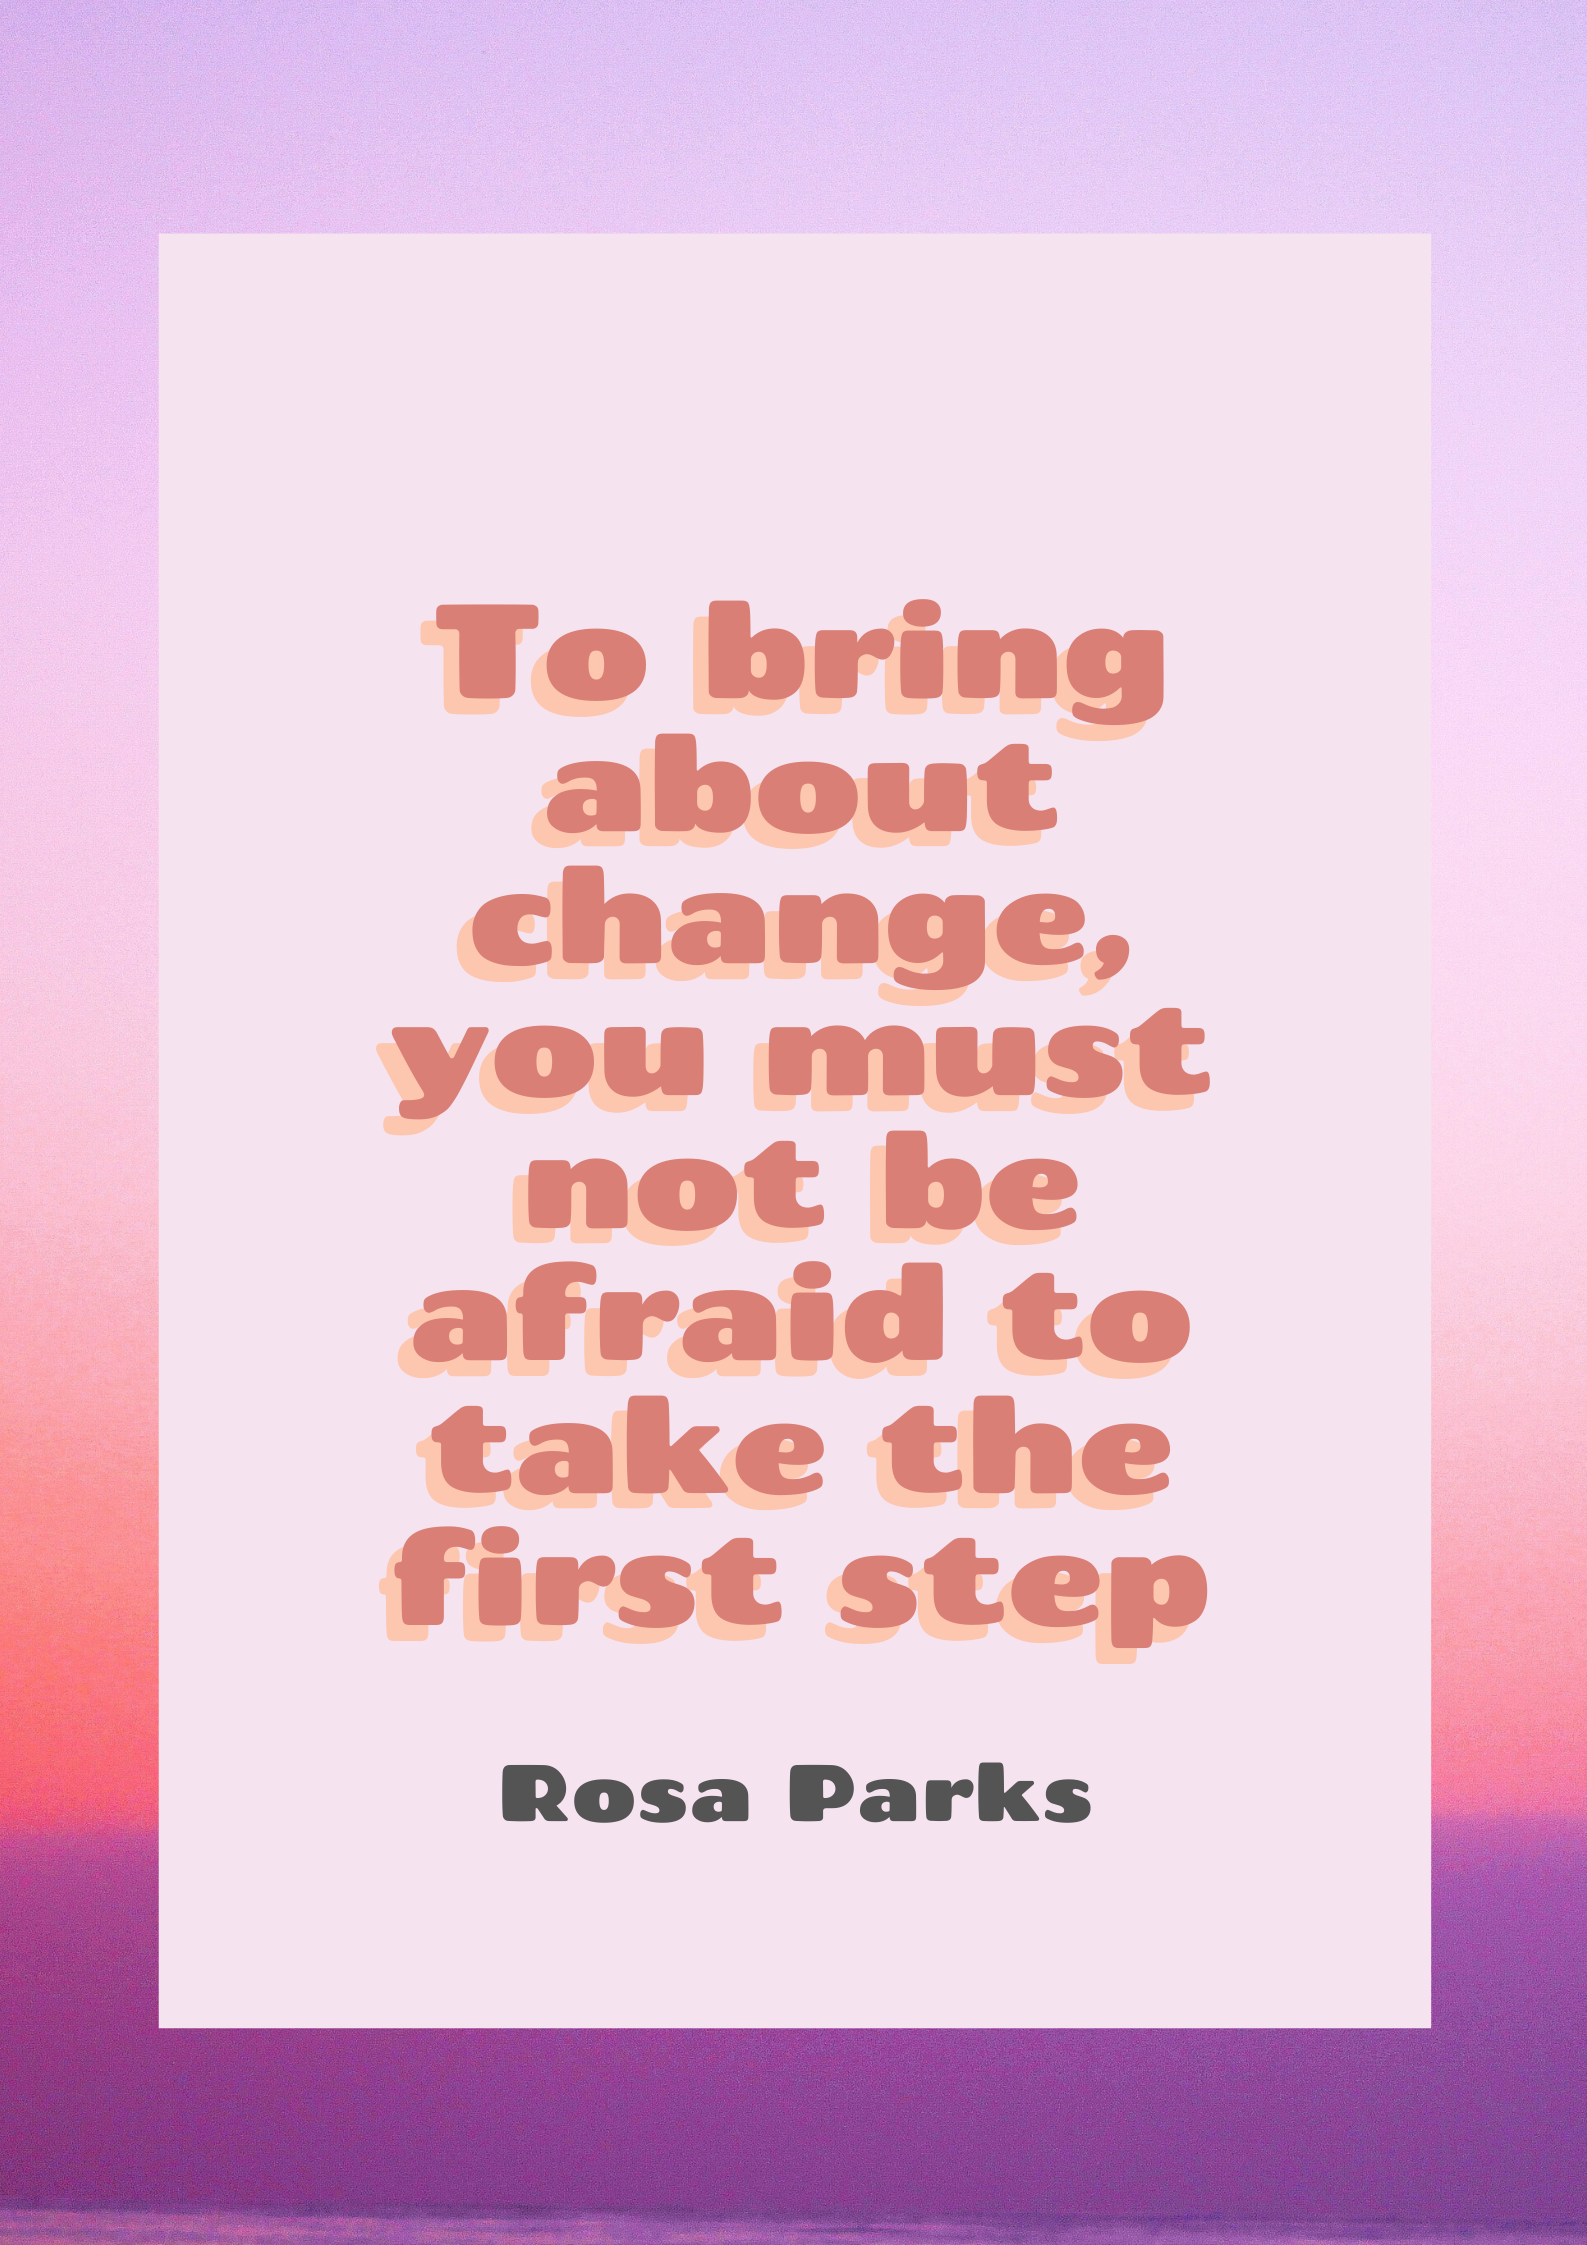 motivational quotes inspirational women rosa parks